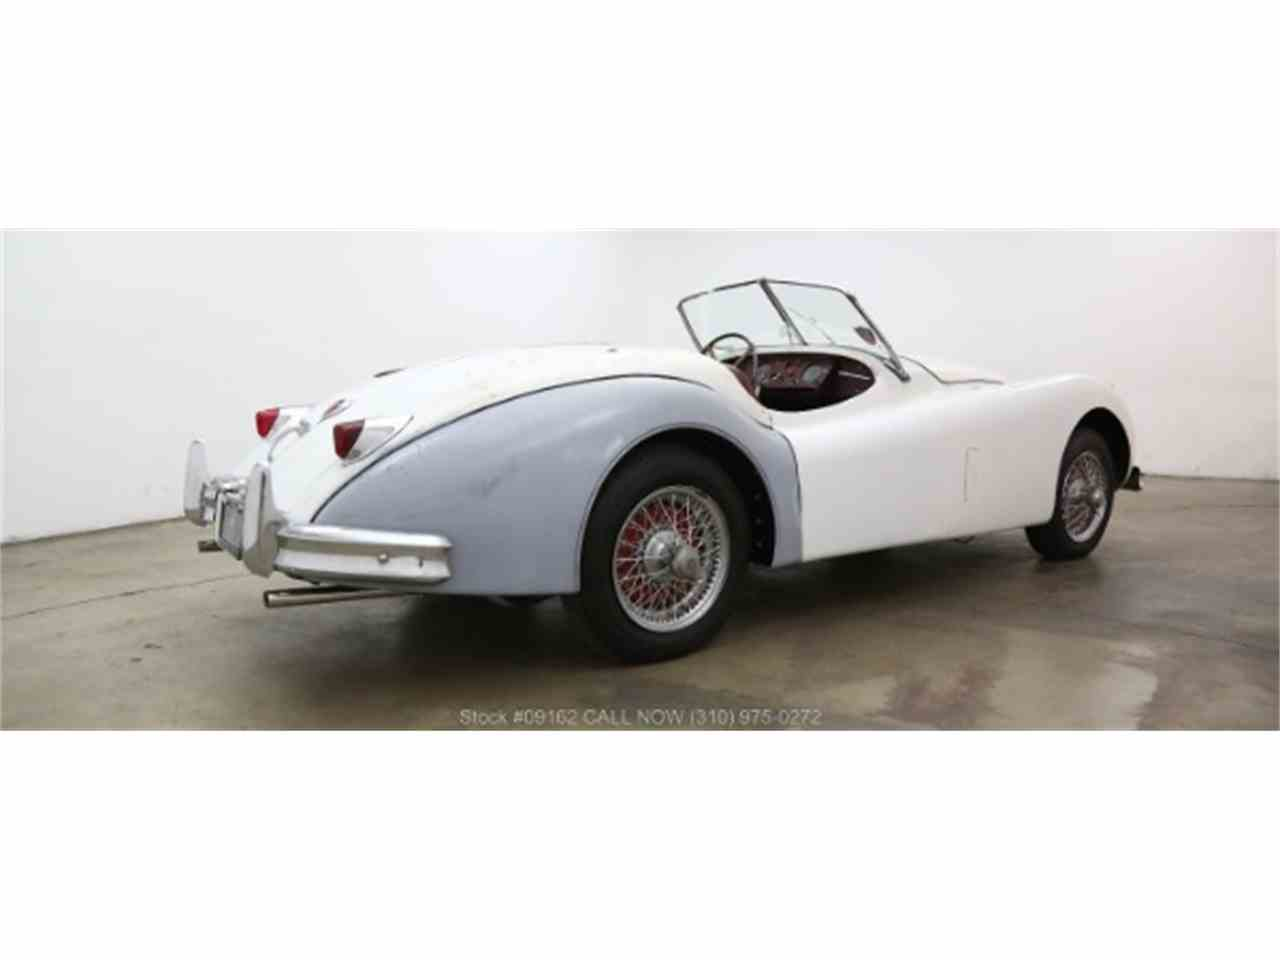 in roadster georgia classiccars listings com of view lithia picture jaguar c sale std large for cc springs